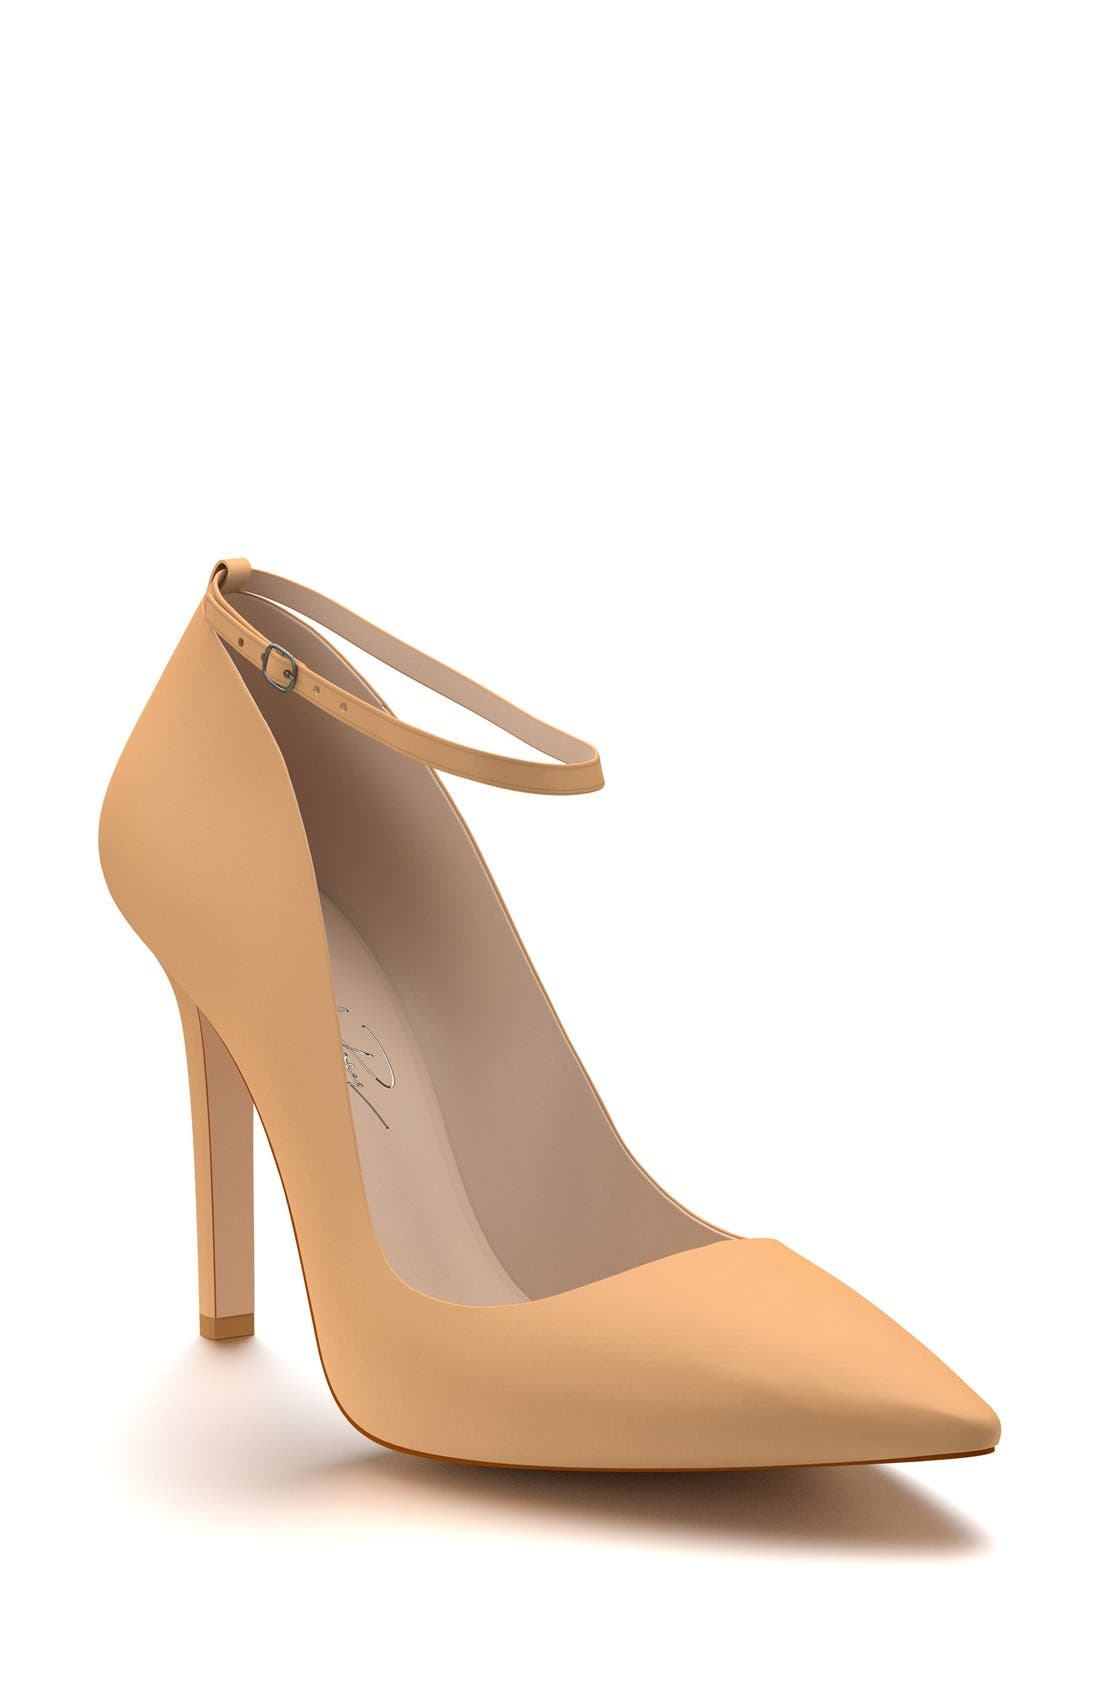 Ankle Strap Pump,                             Main thumbnail 1, color,                             Spiced Tan Leather